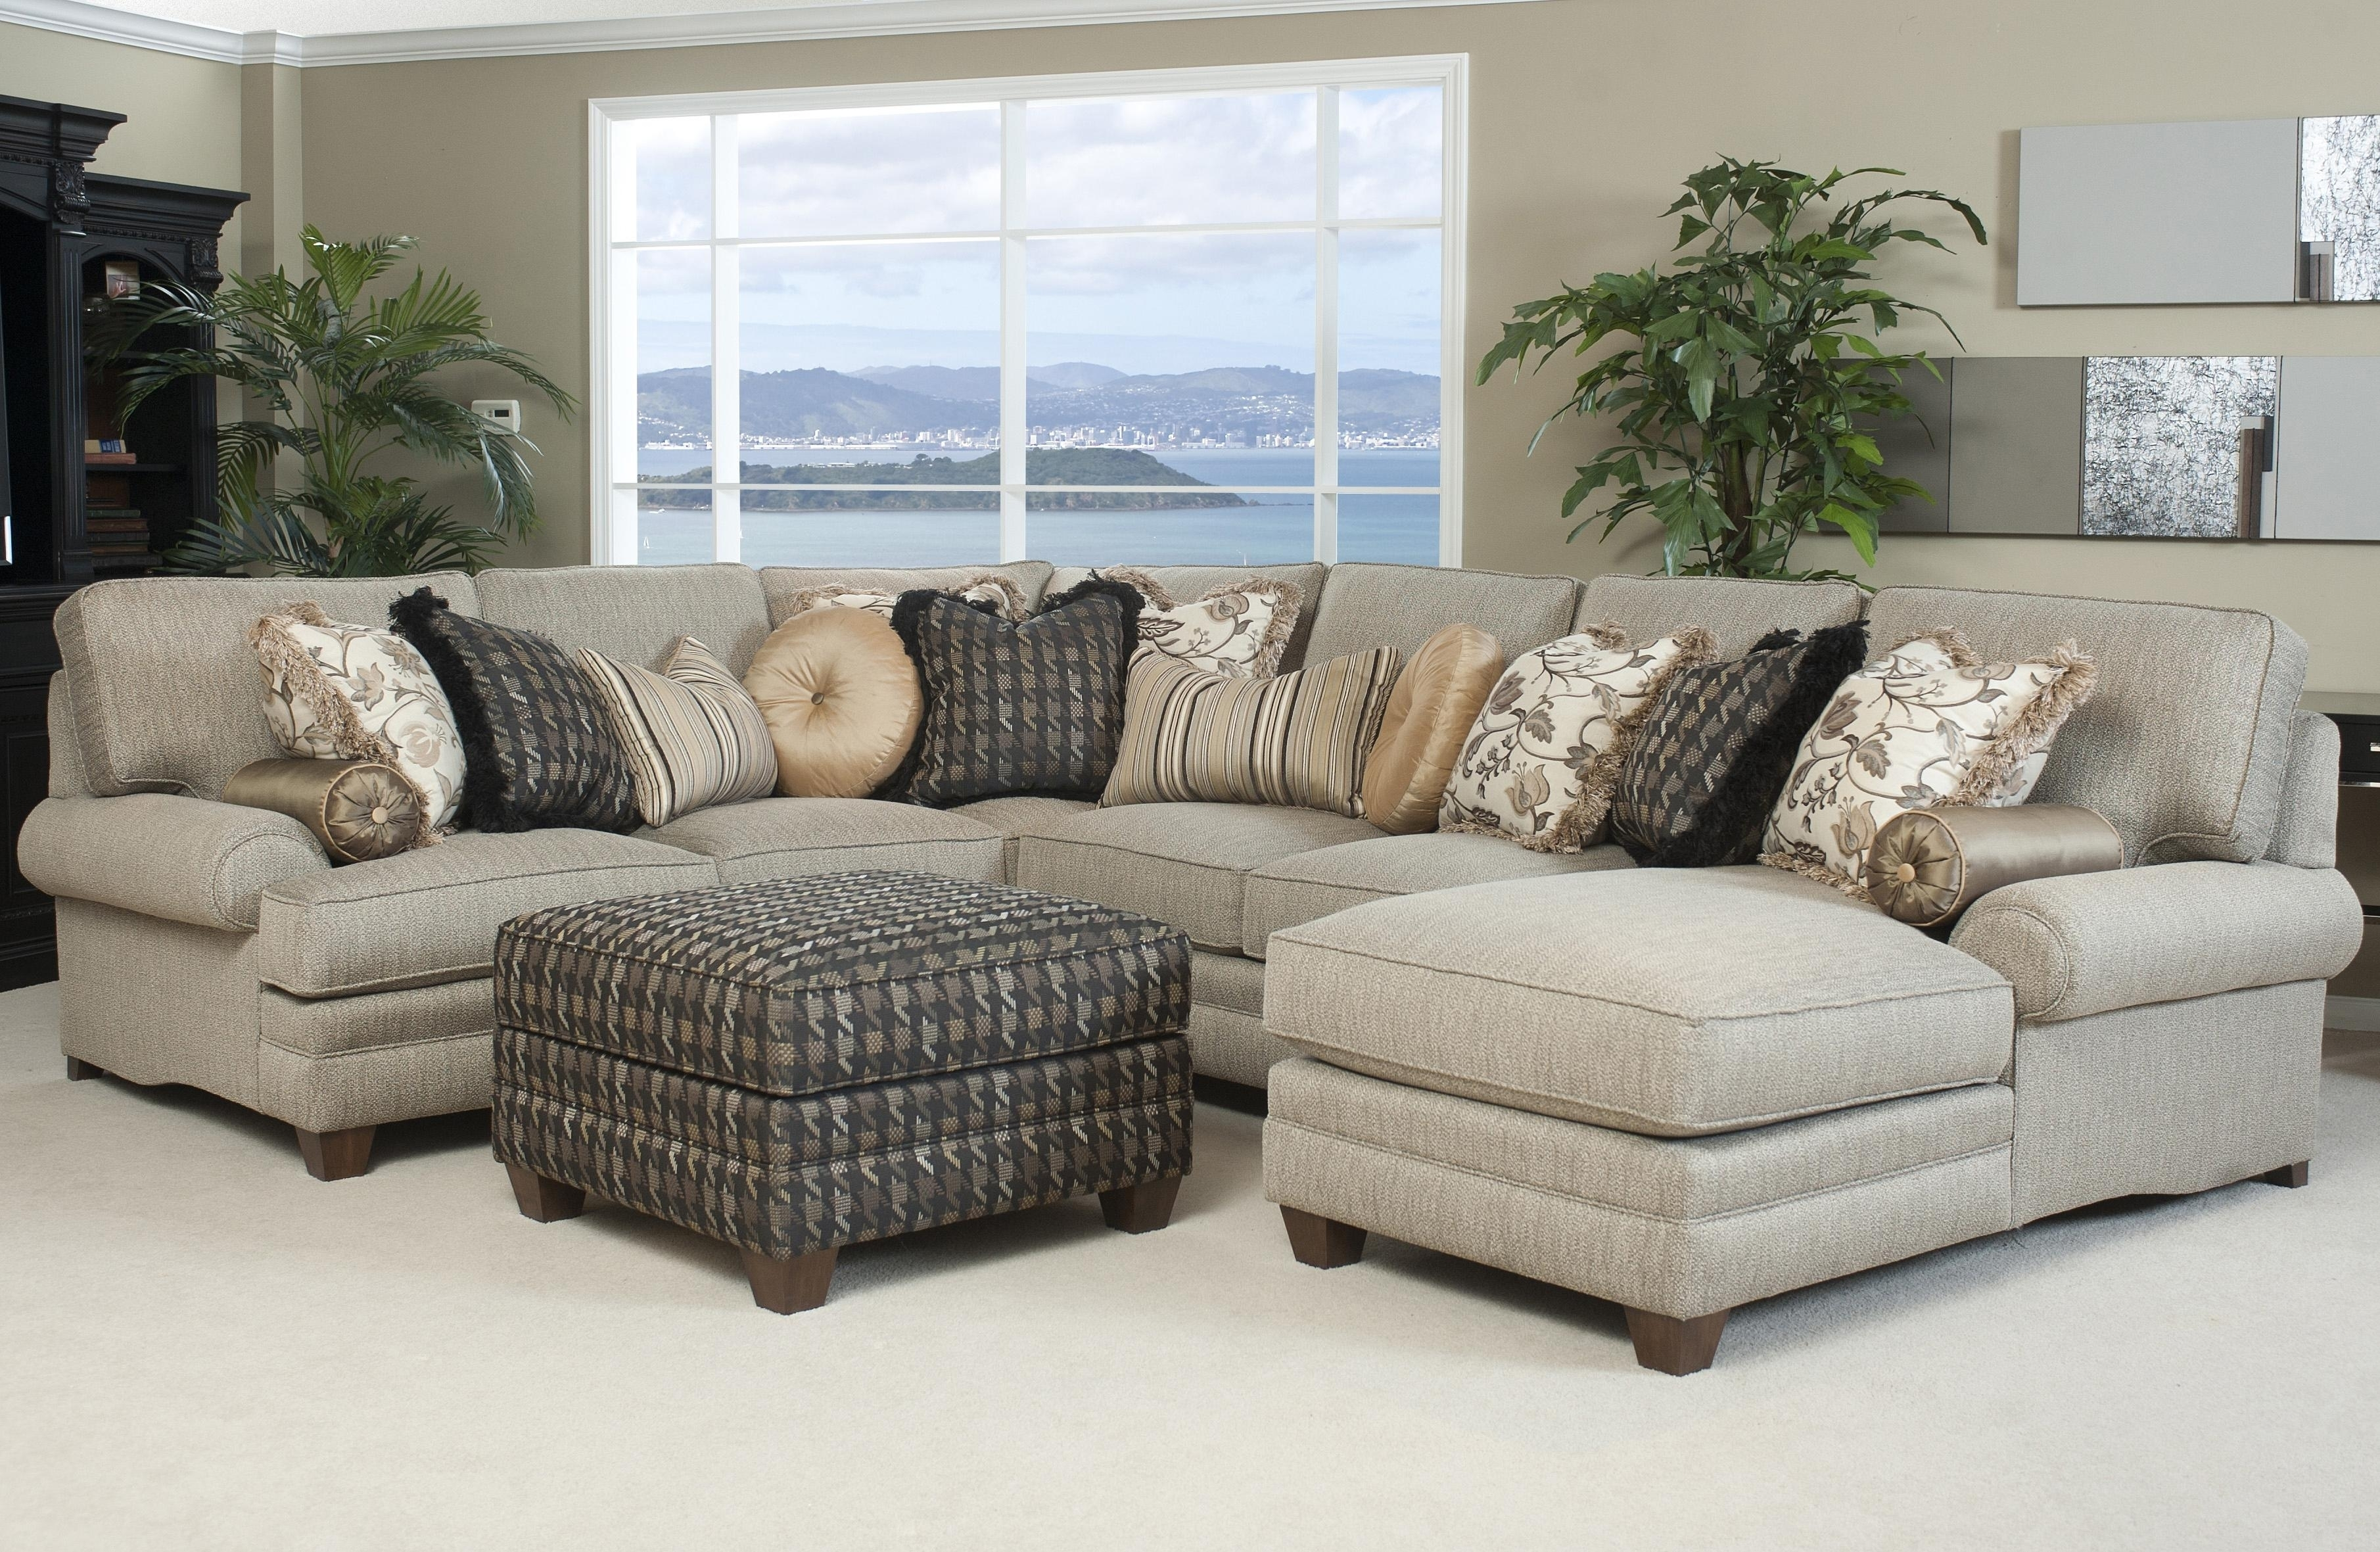 Awesome Sectional Sofas In Phoenix Az - Buildsimplehome with regard to Phoenix Arizona Sectional Sofas (Image 2 of 10)